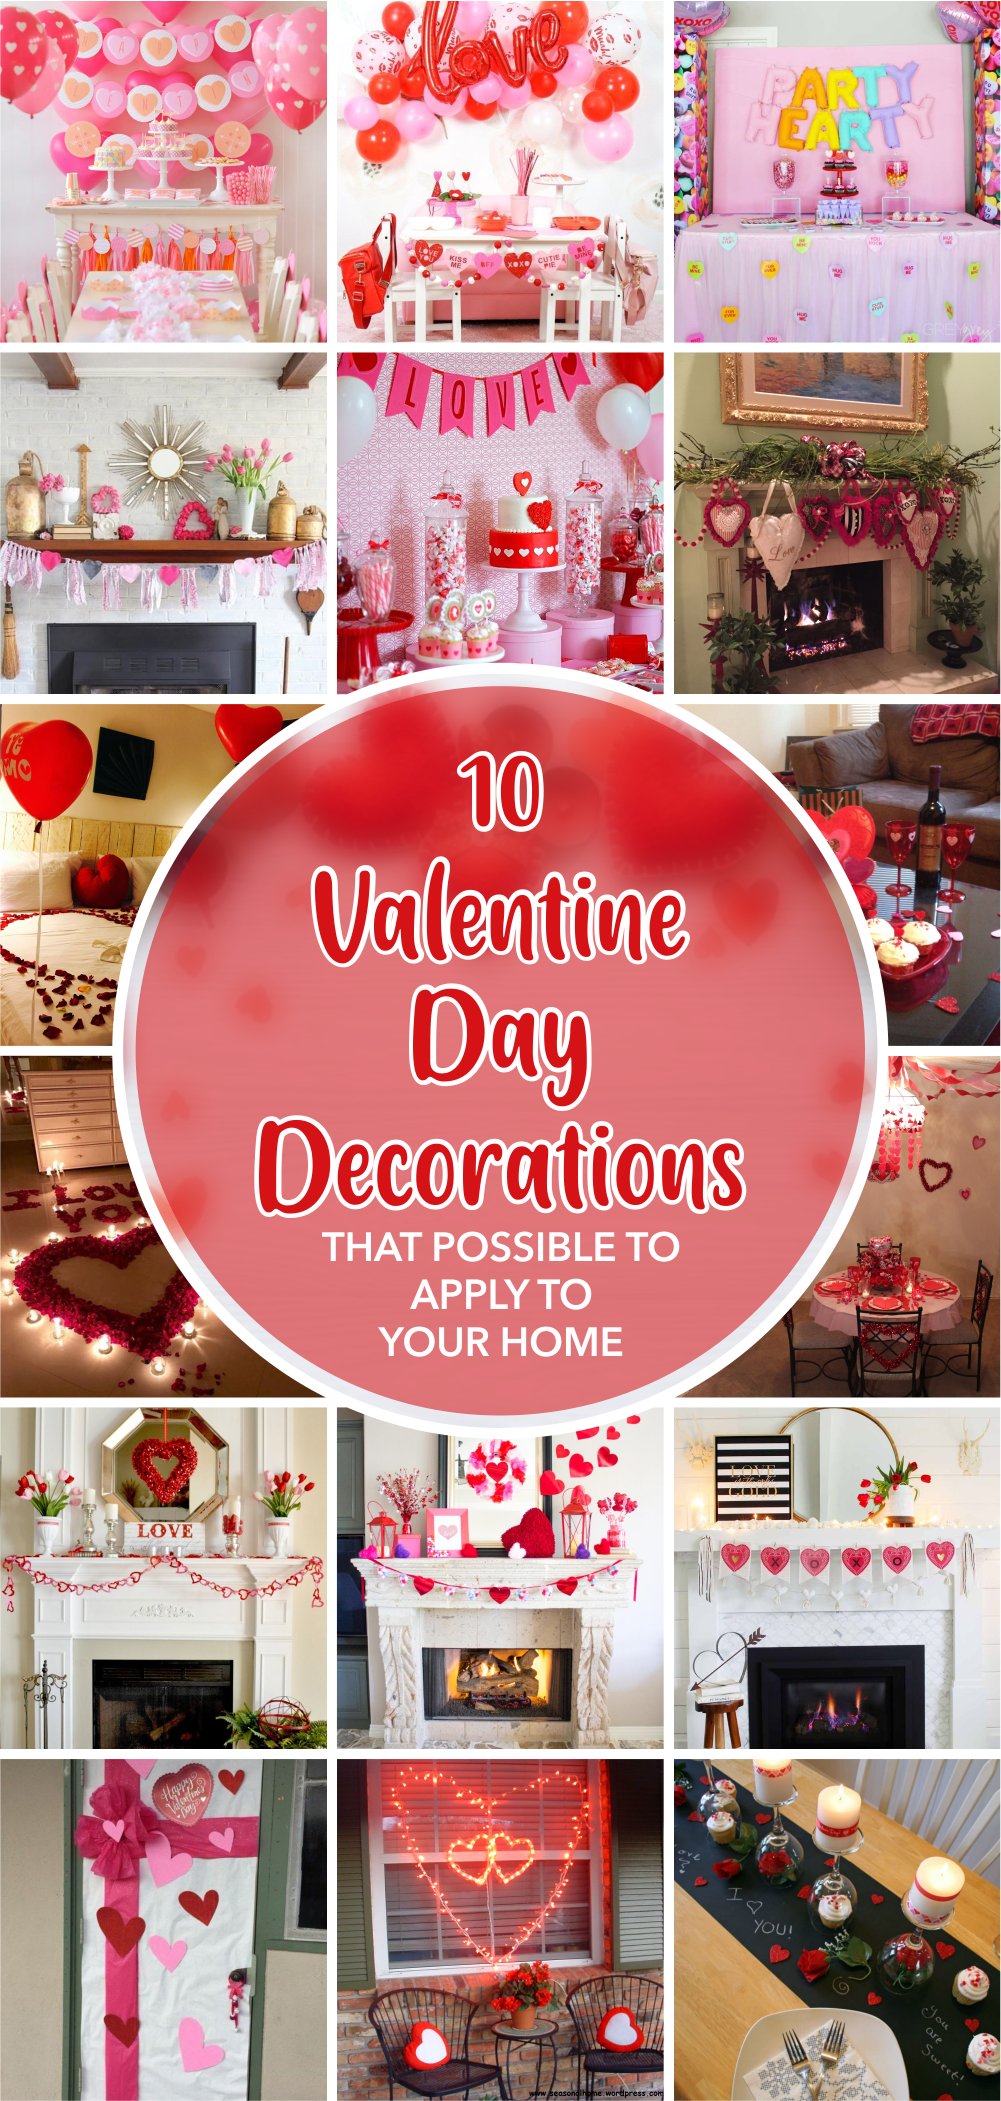 10-valentine-day-decorations-that-possible-to-apply-to-your-home-1